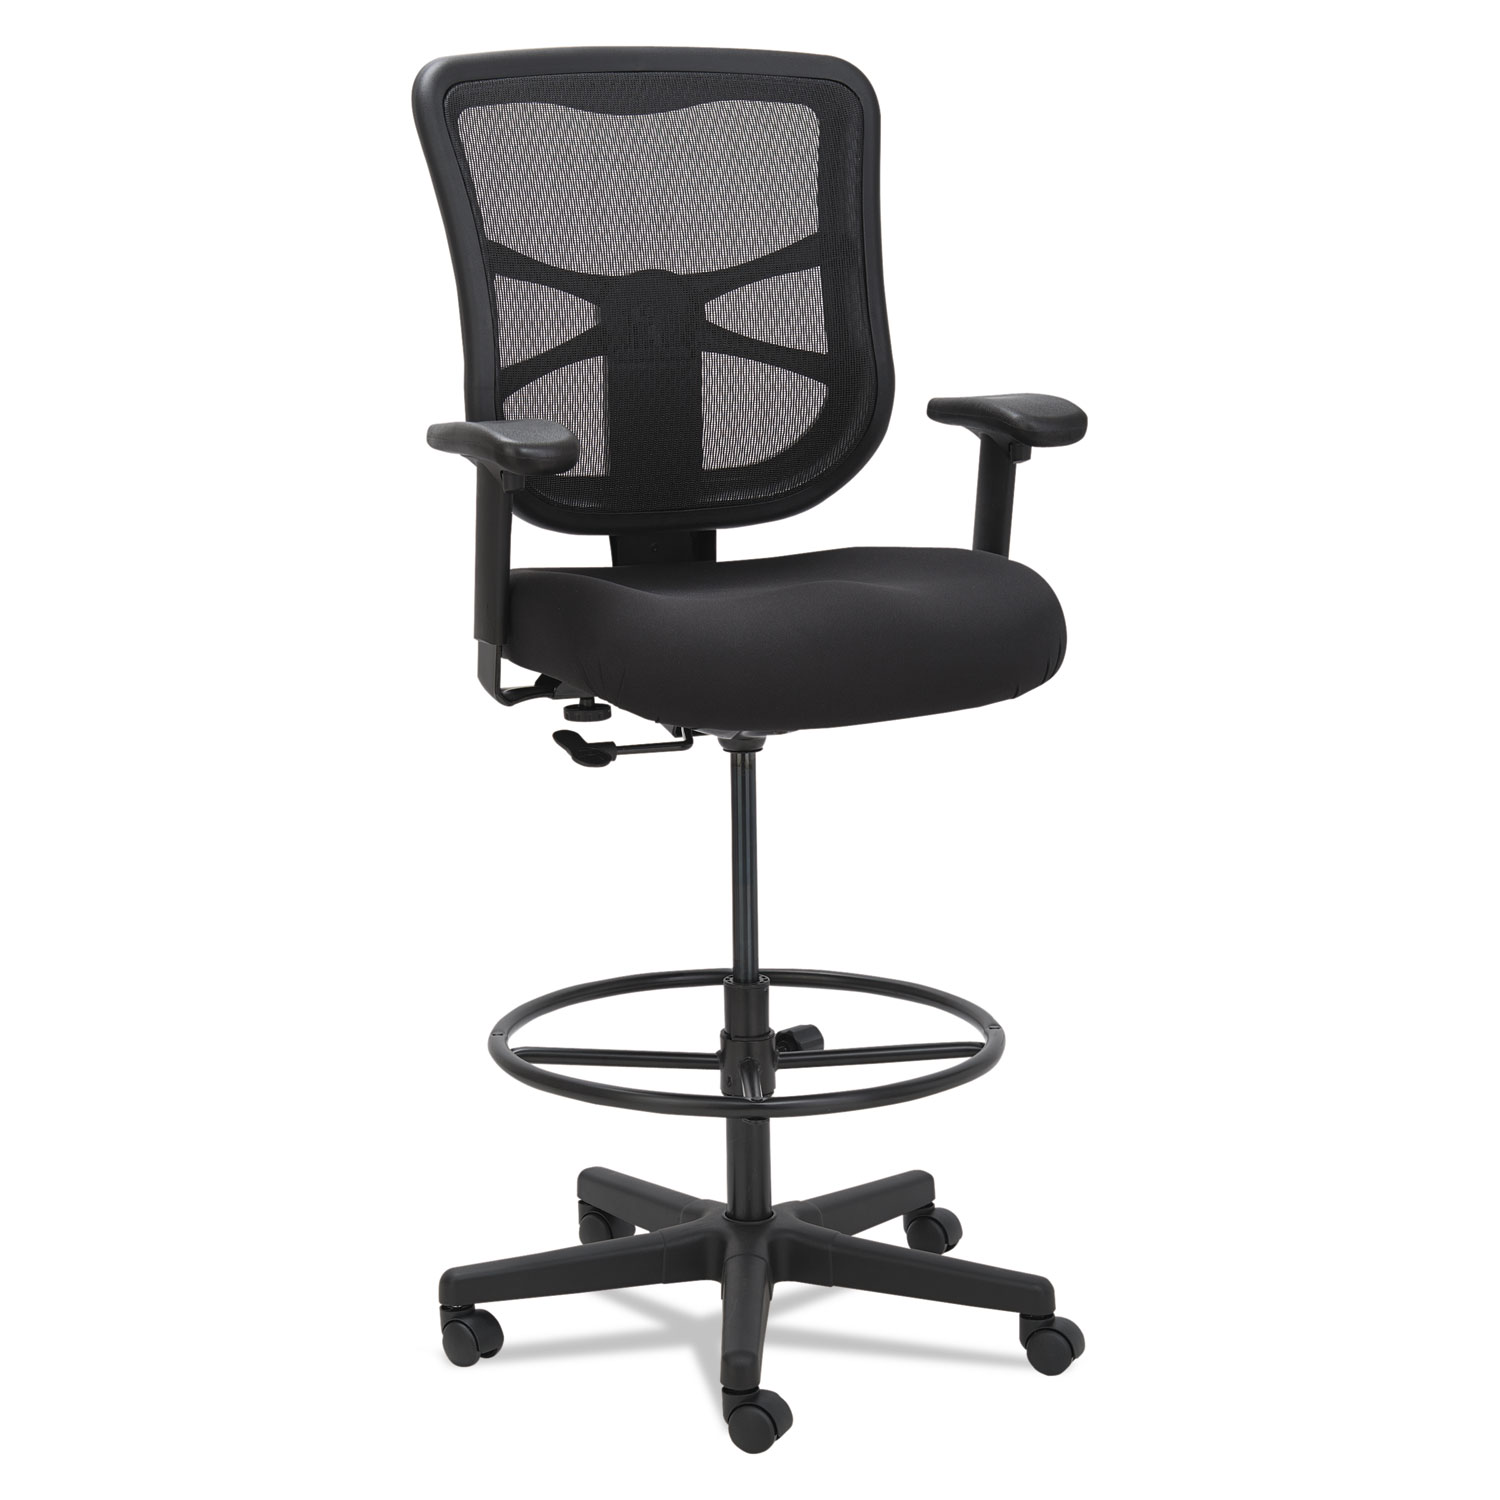 Alera Office Chairs Alera Elusion Series Mesh Stool Black Affordable Office